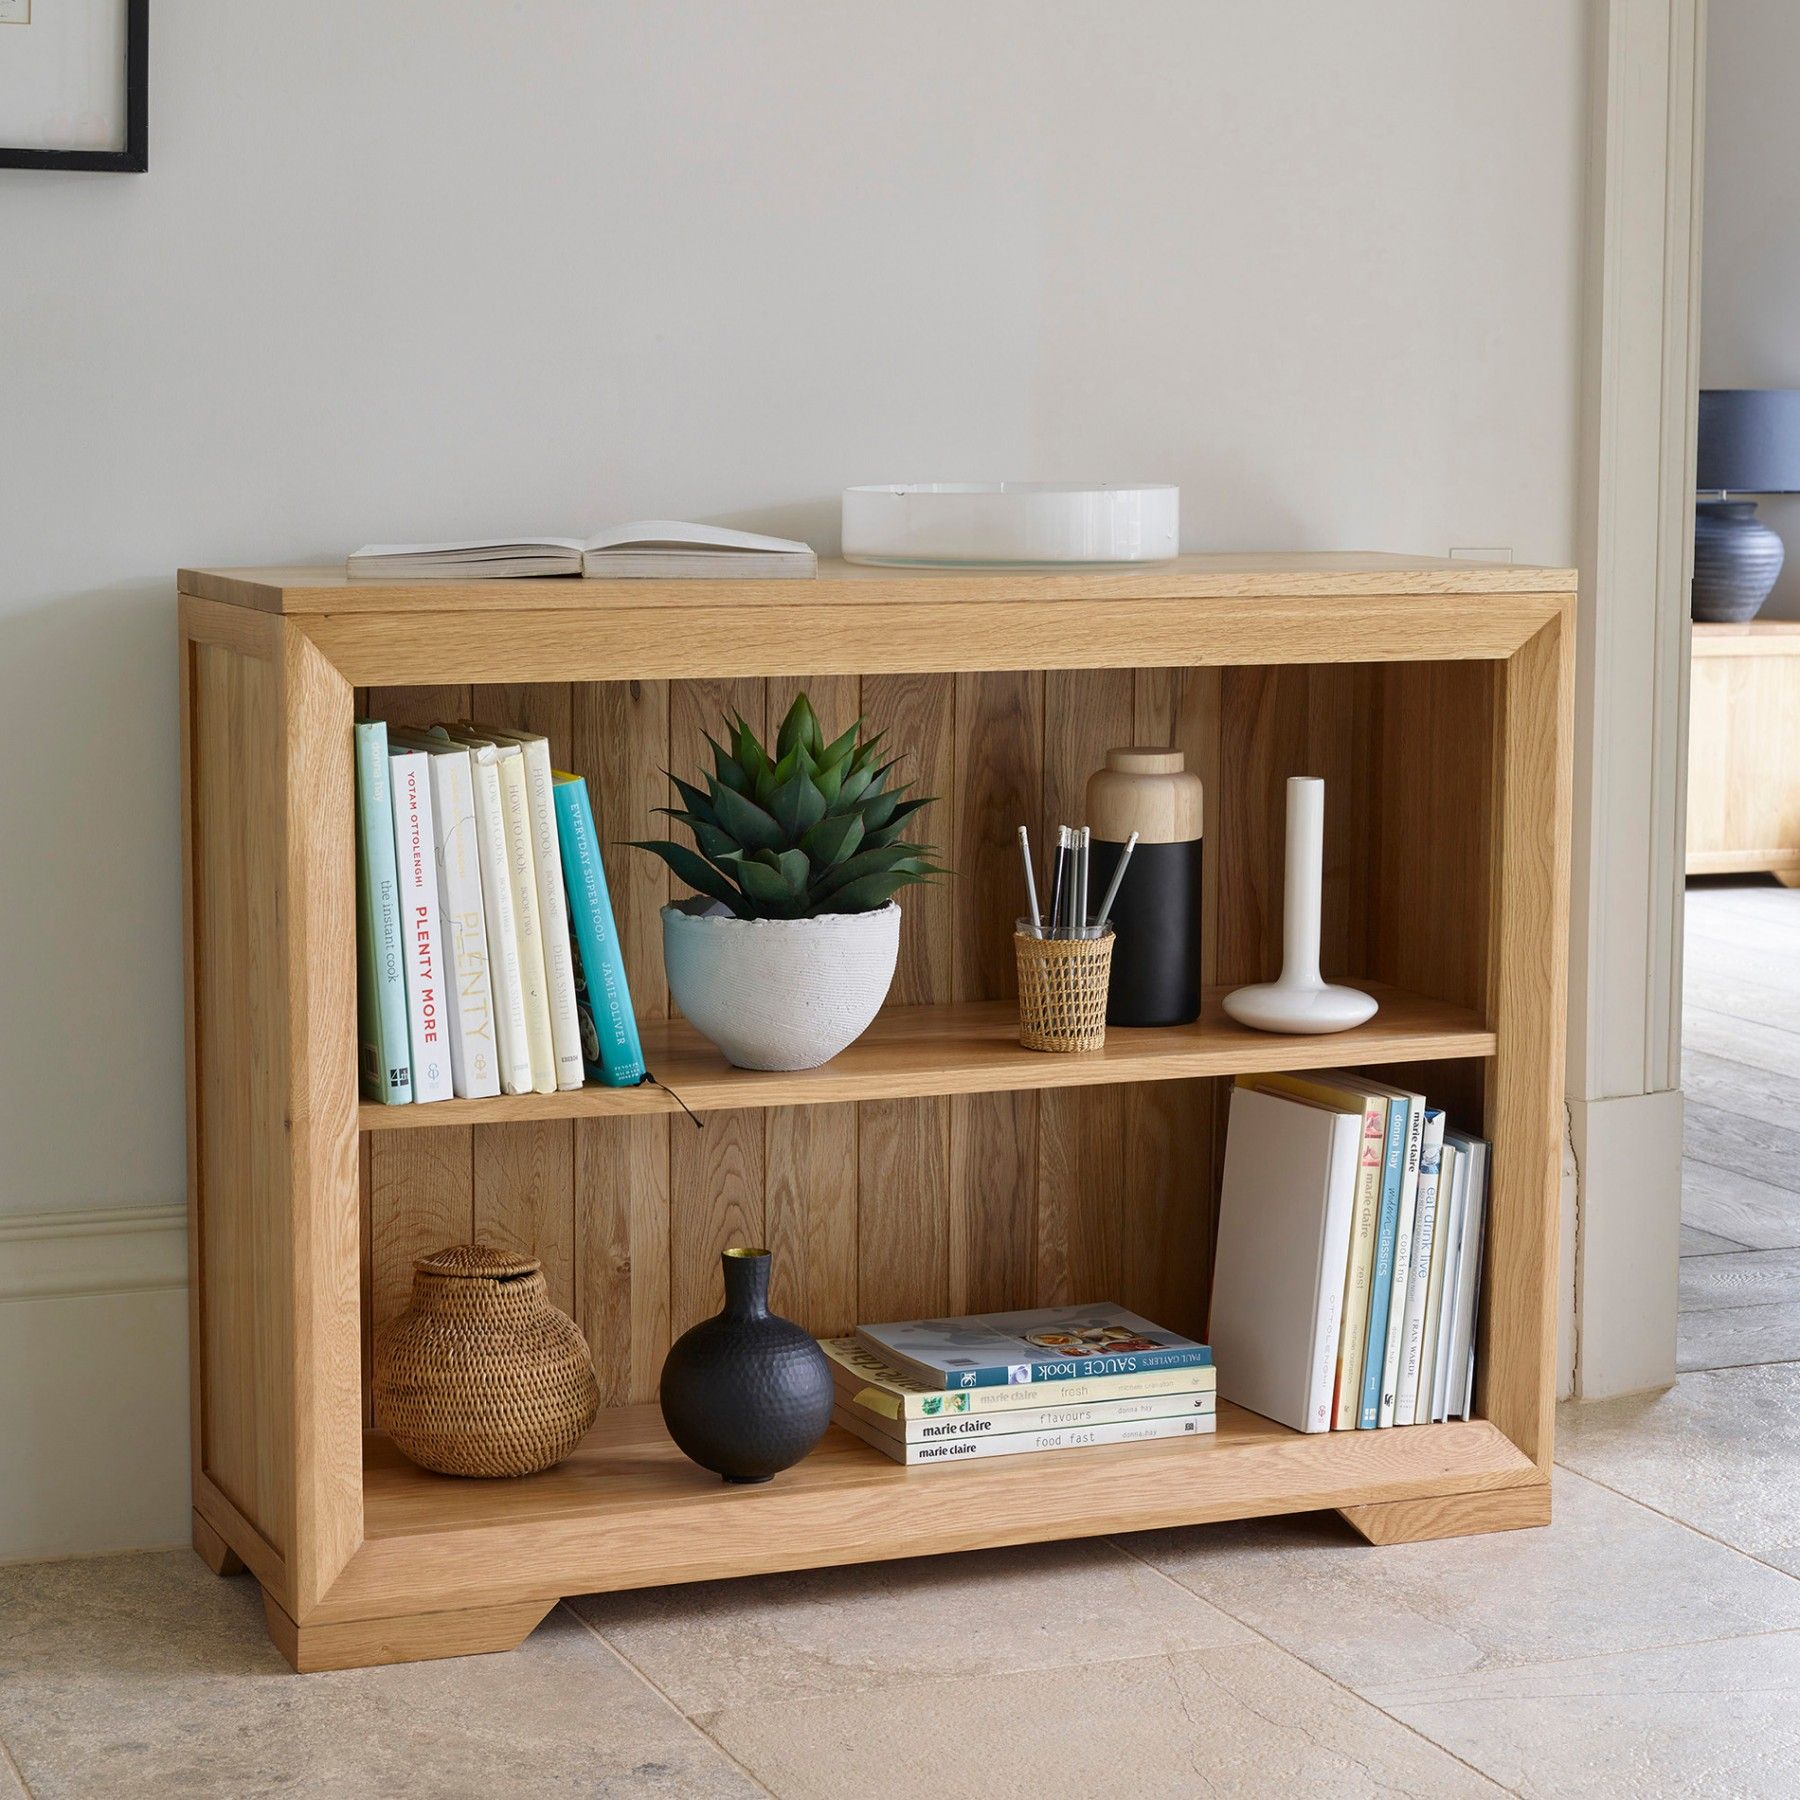 The bevel natural solid oak small bookcase has an exclusive design